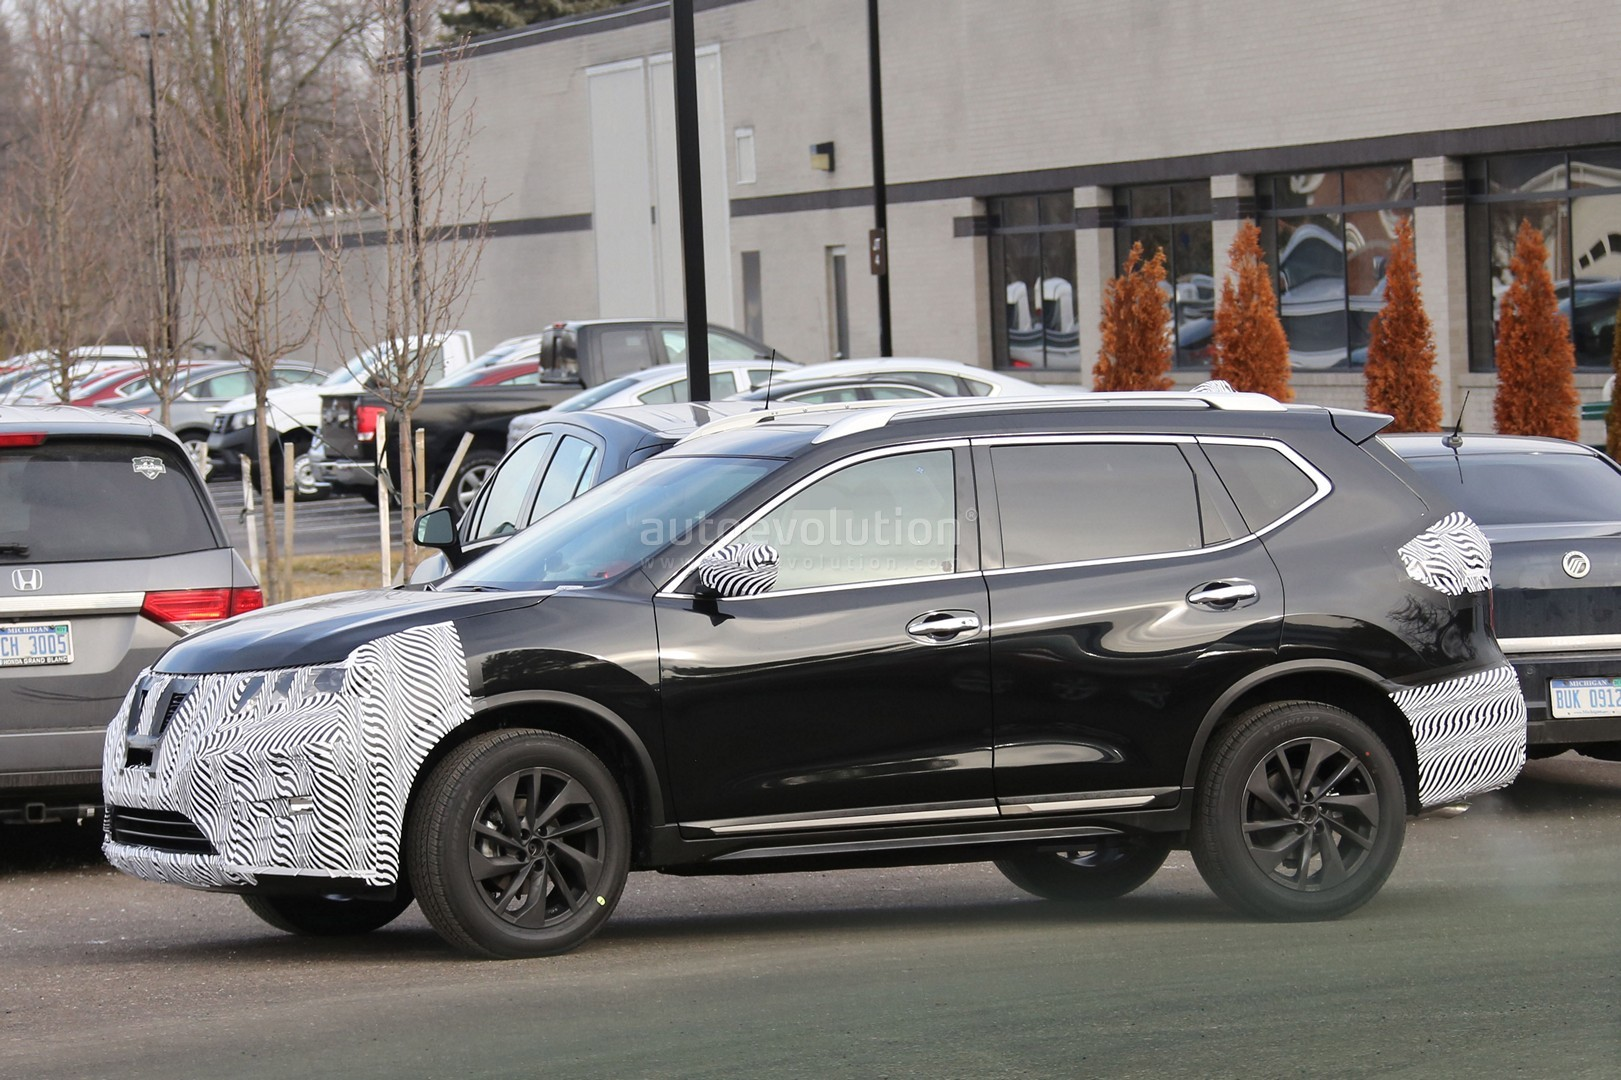 2017-nissan-rogue-spied-with-cosmetic-updates_9.jpg